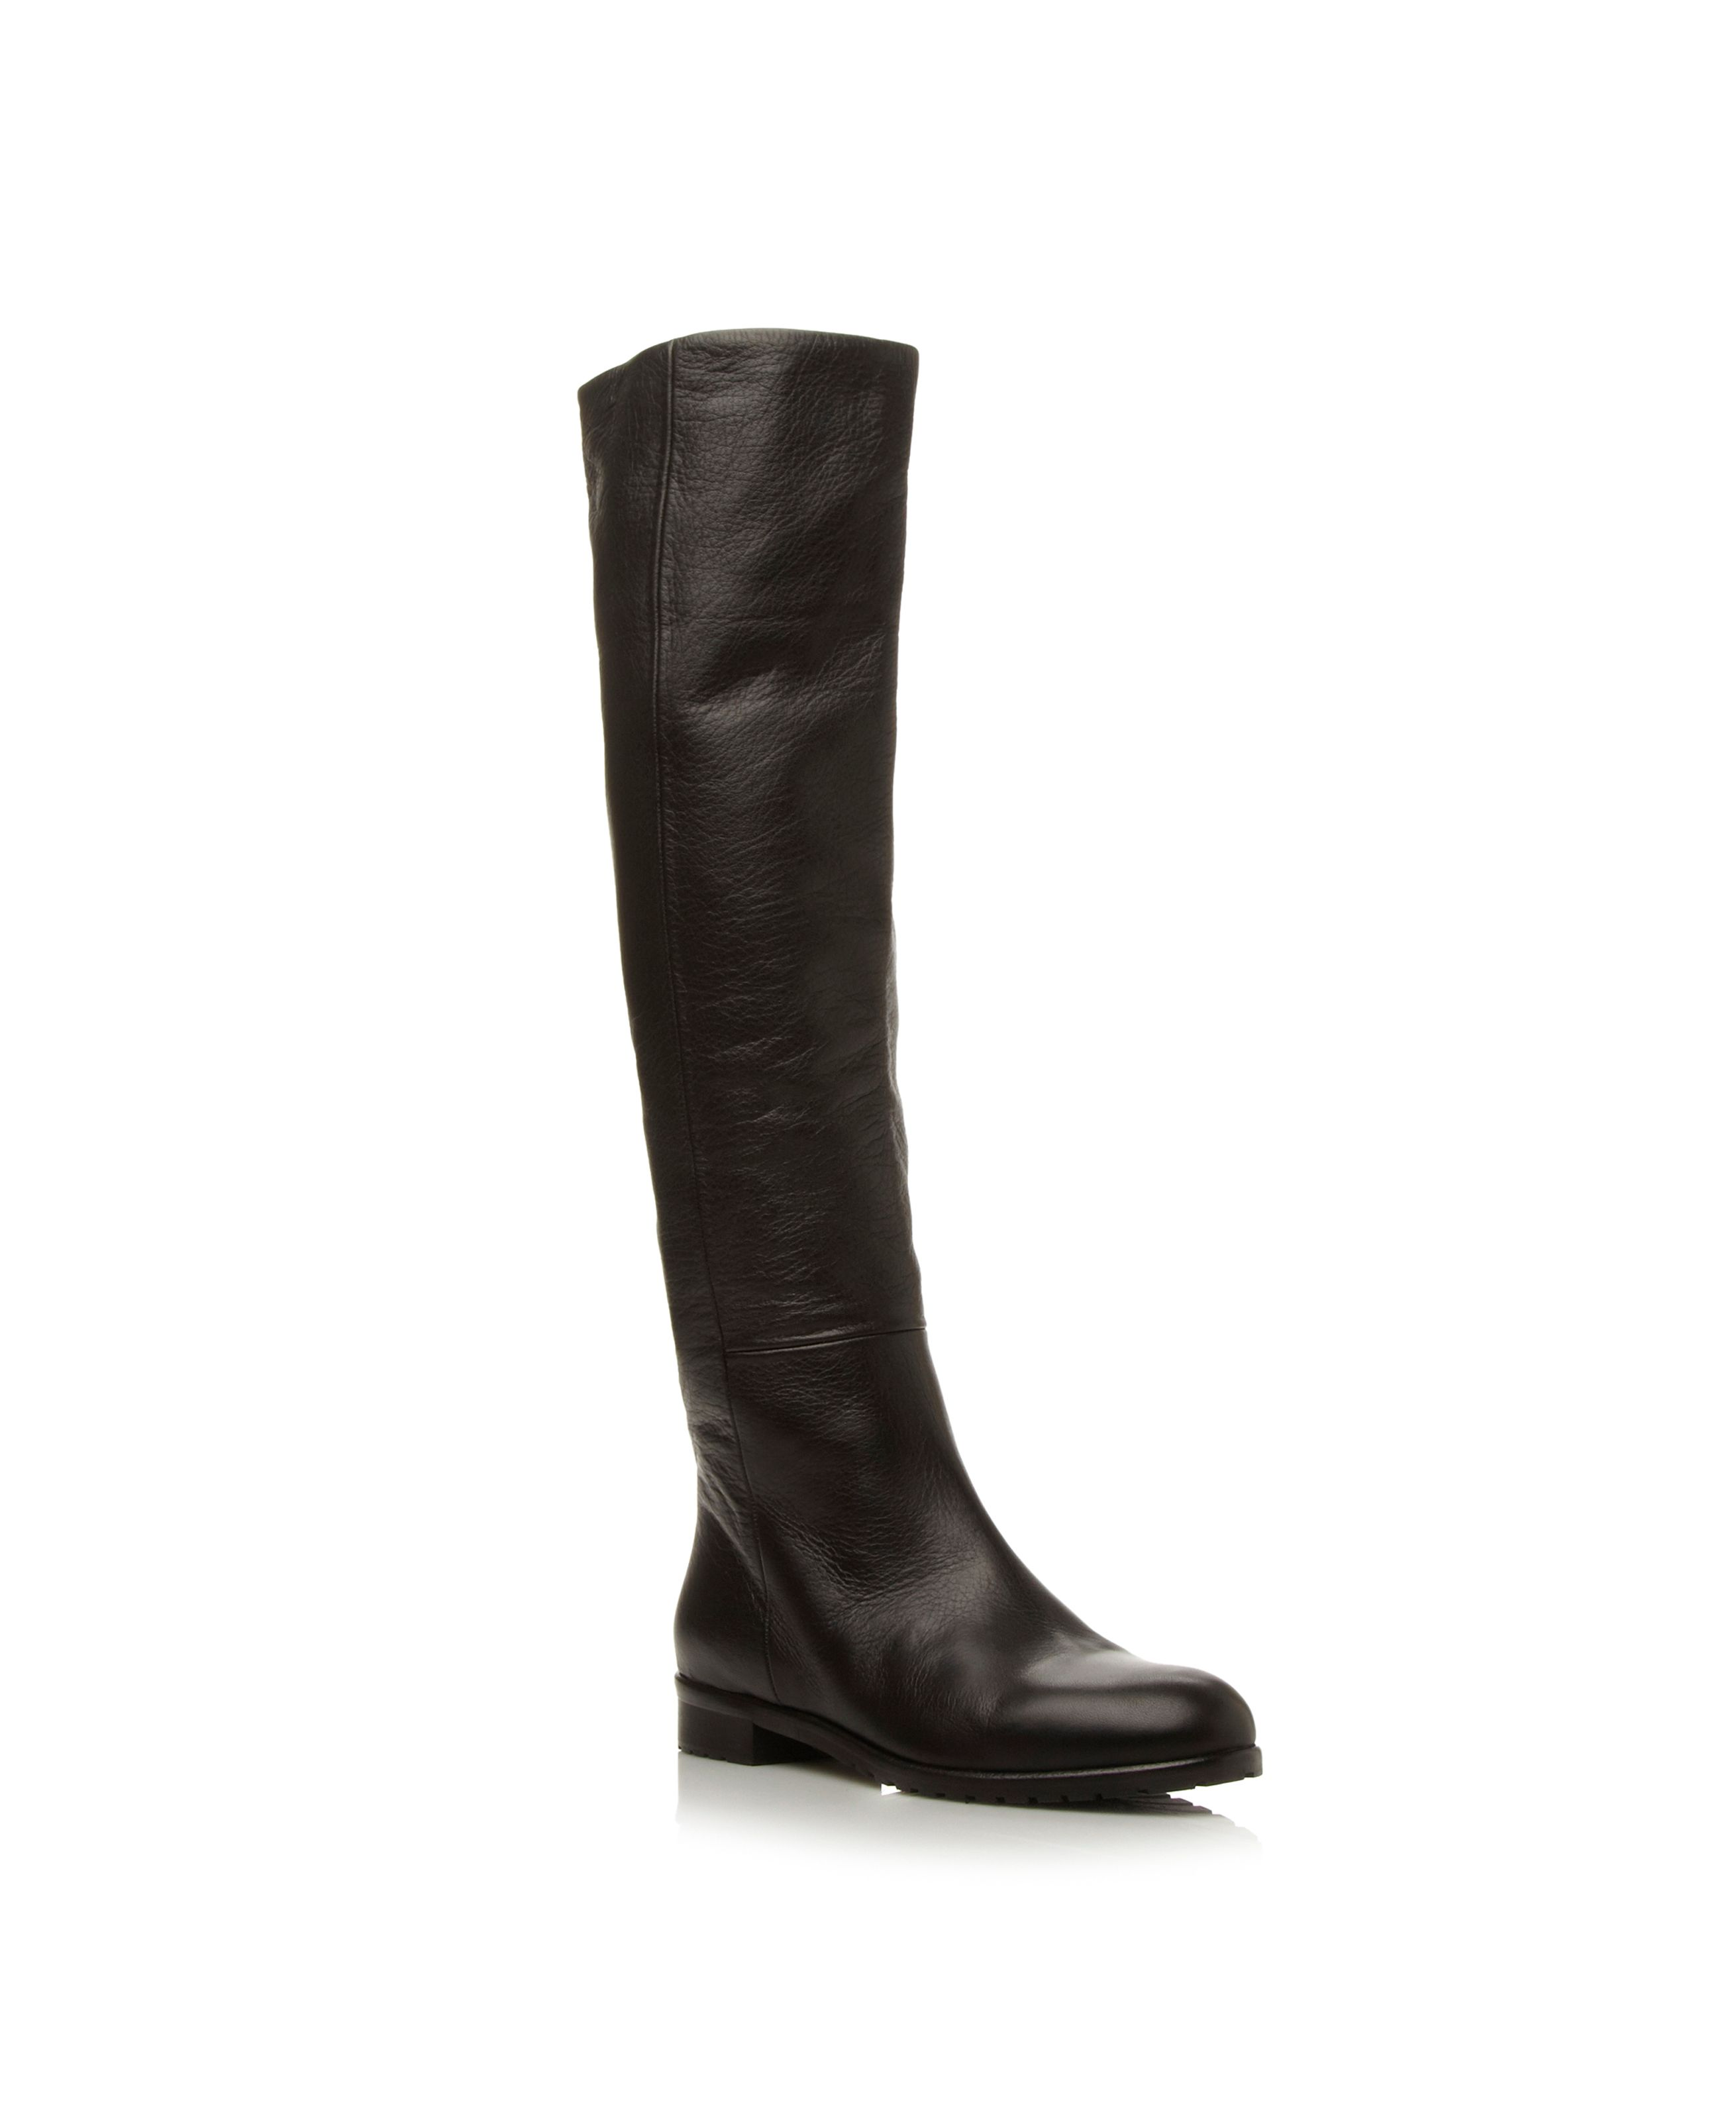 Tasmin flat point knee high boots